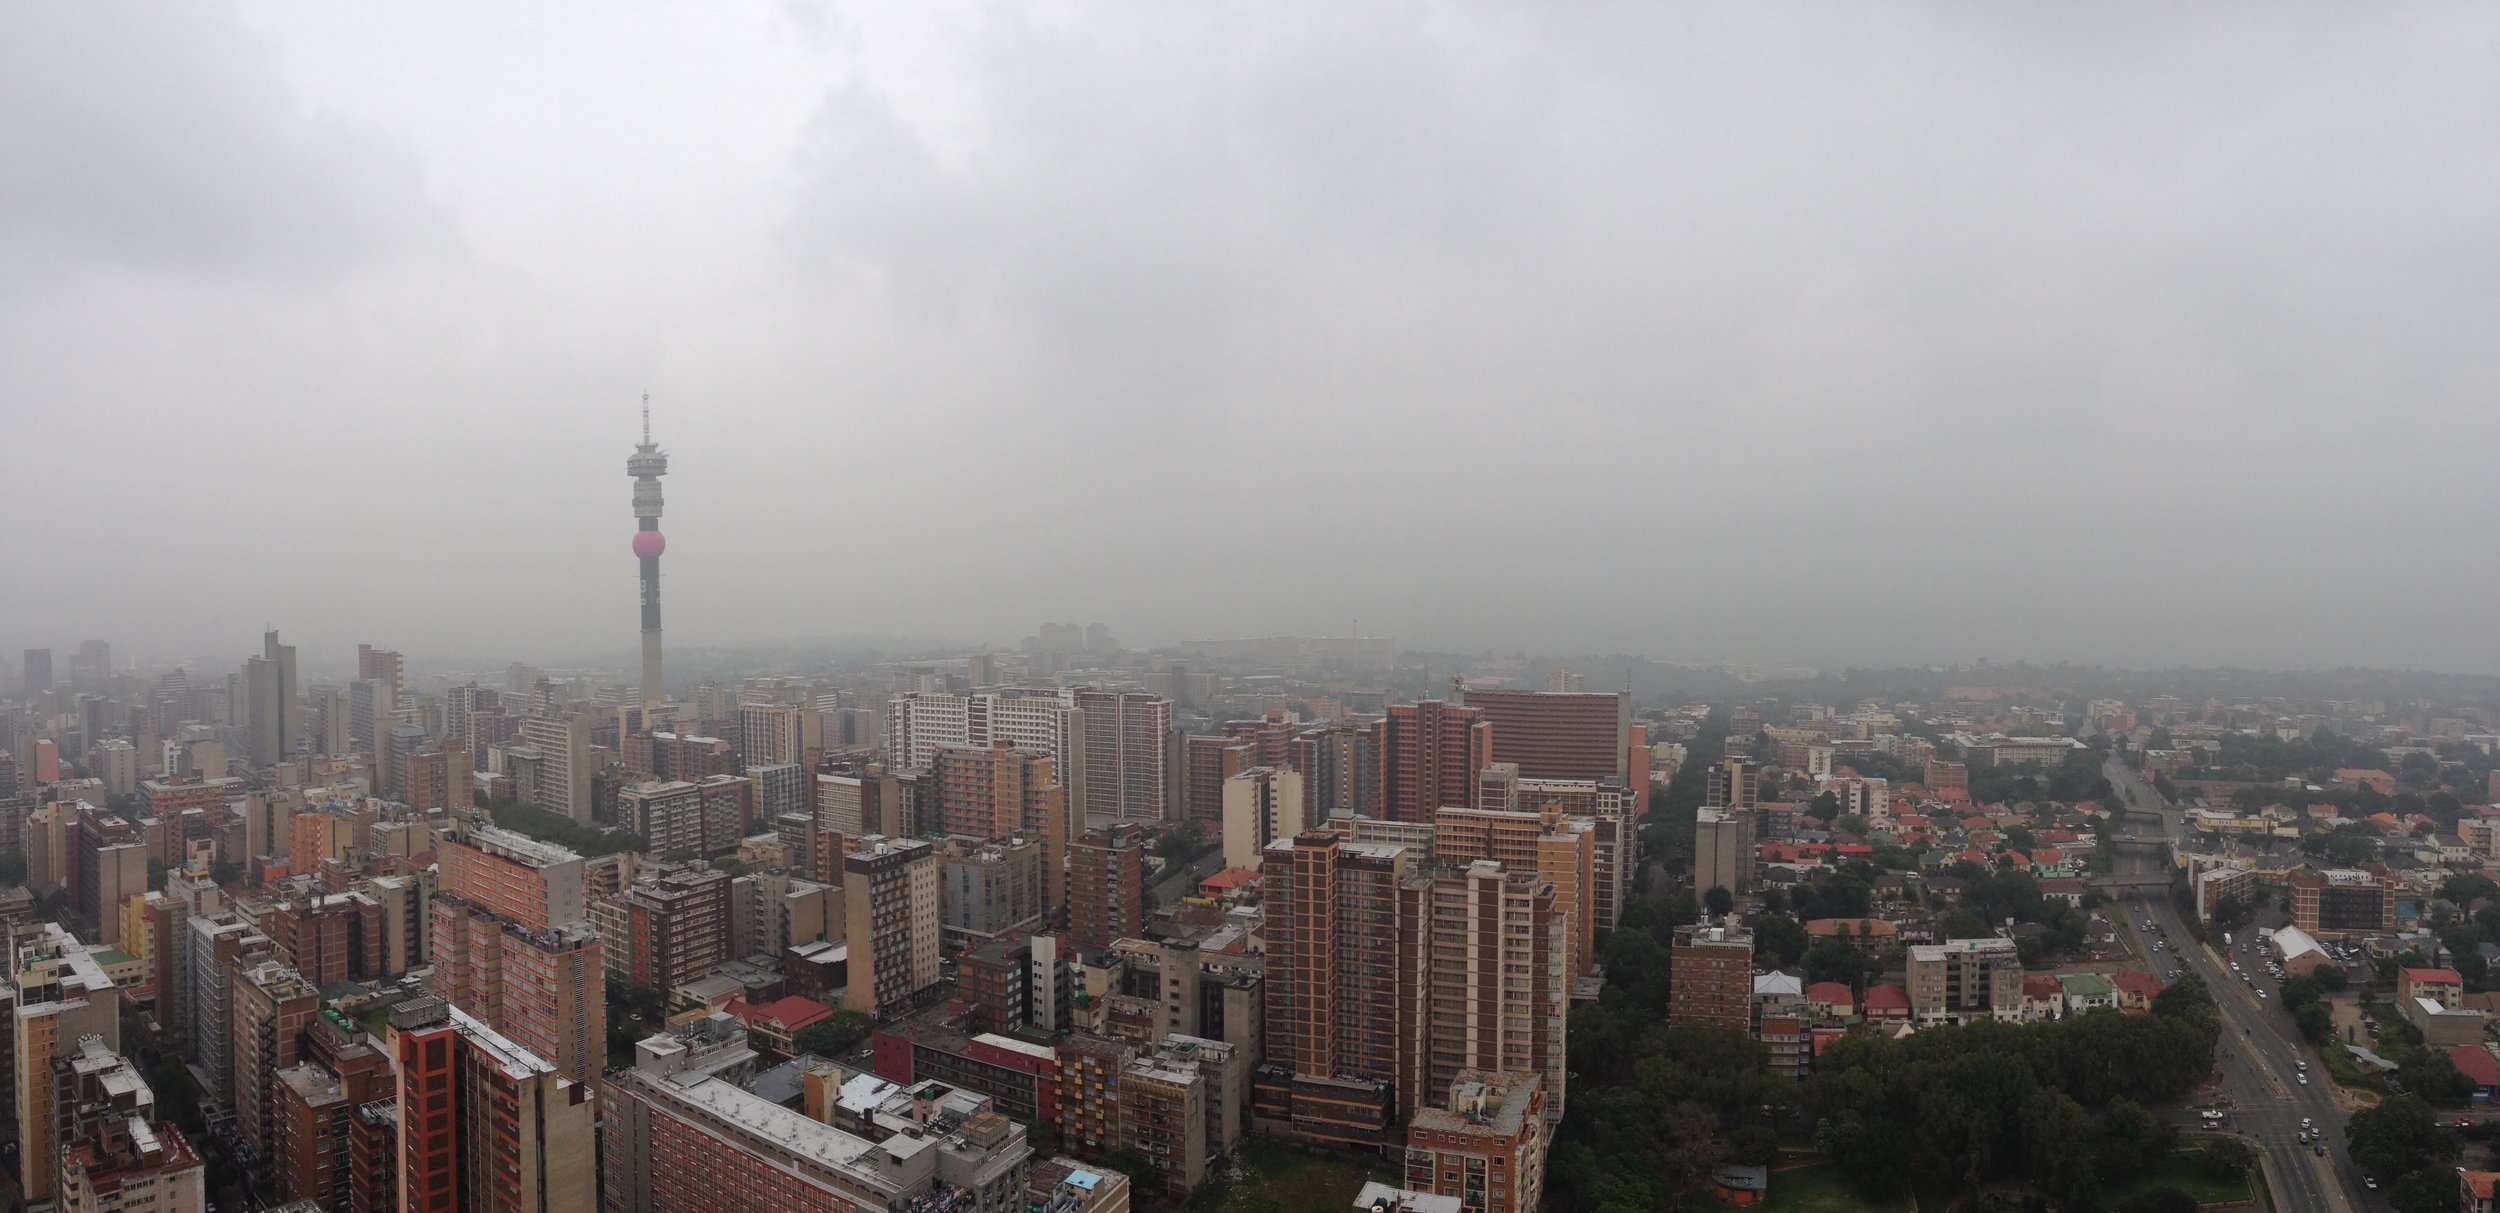 The inner-city suburbs of Hillbrow and Berea in Johannesburg.